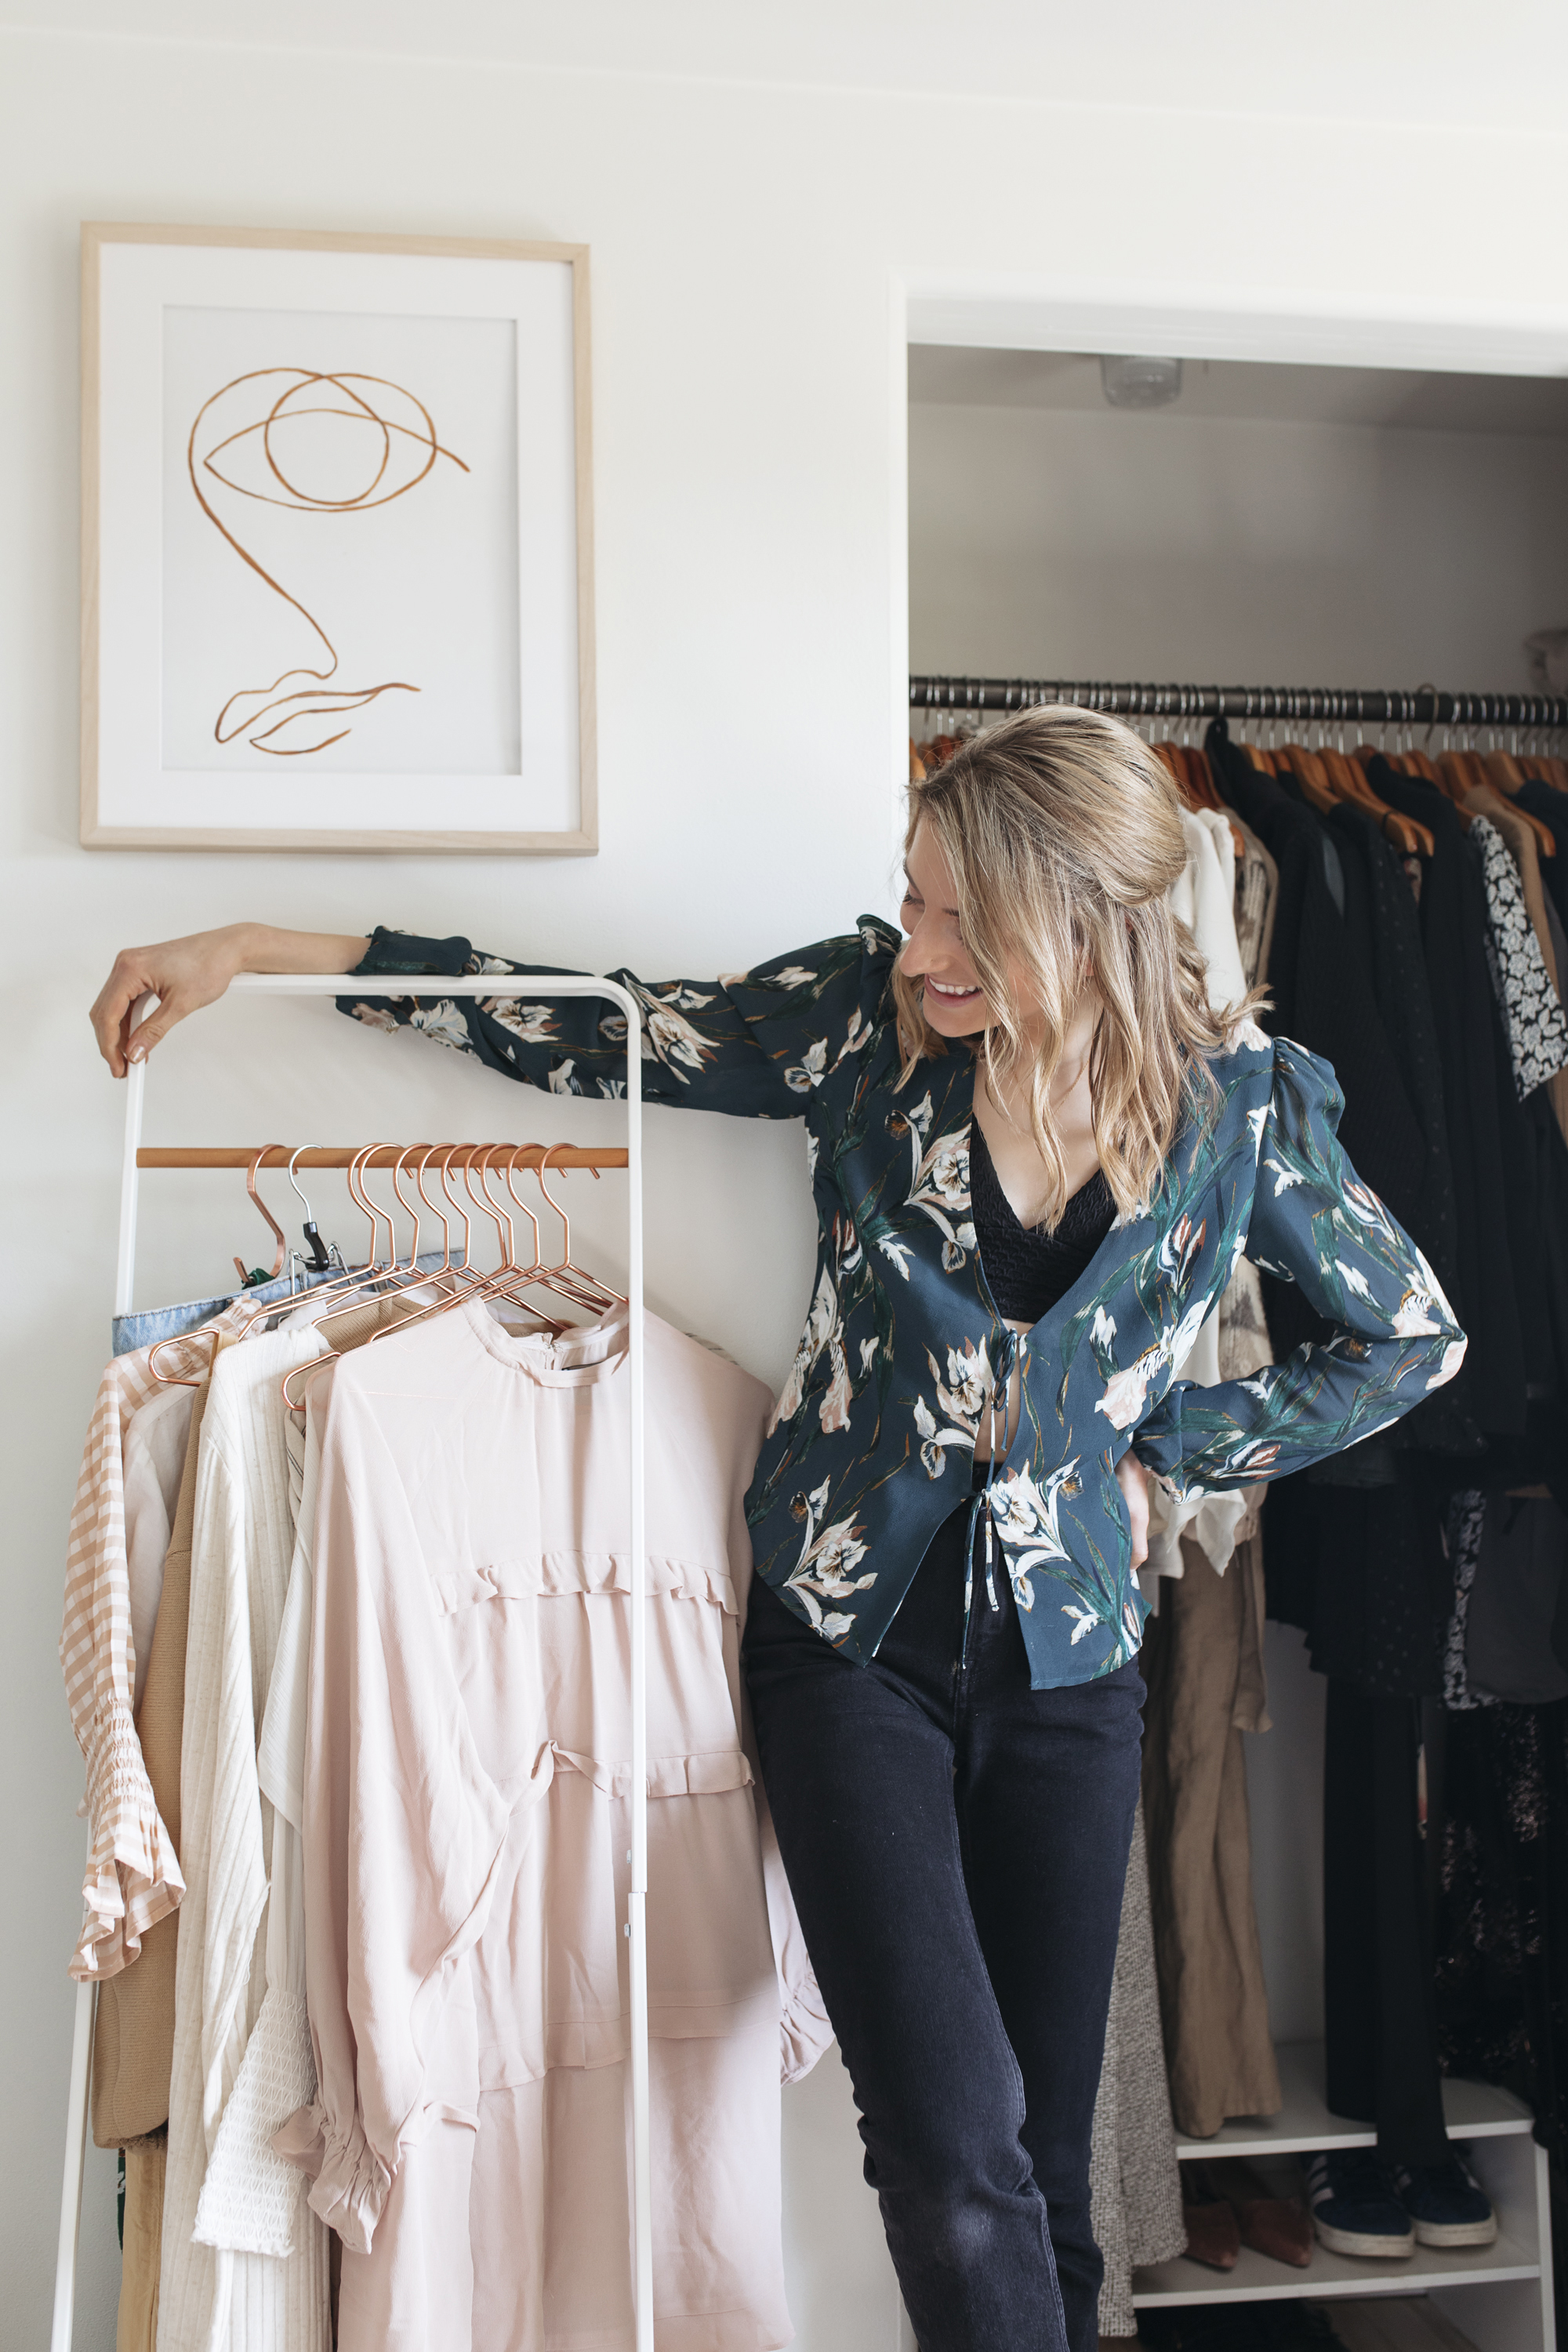 Getting my wardrobe ready for spring is one of my creative channels. Read my blog for more creative ideas to get ready for spring!